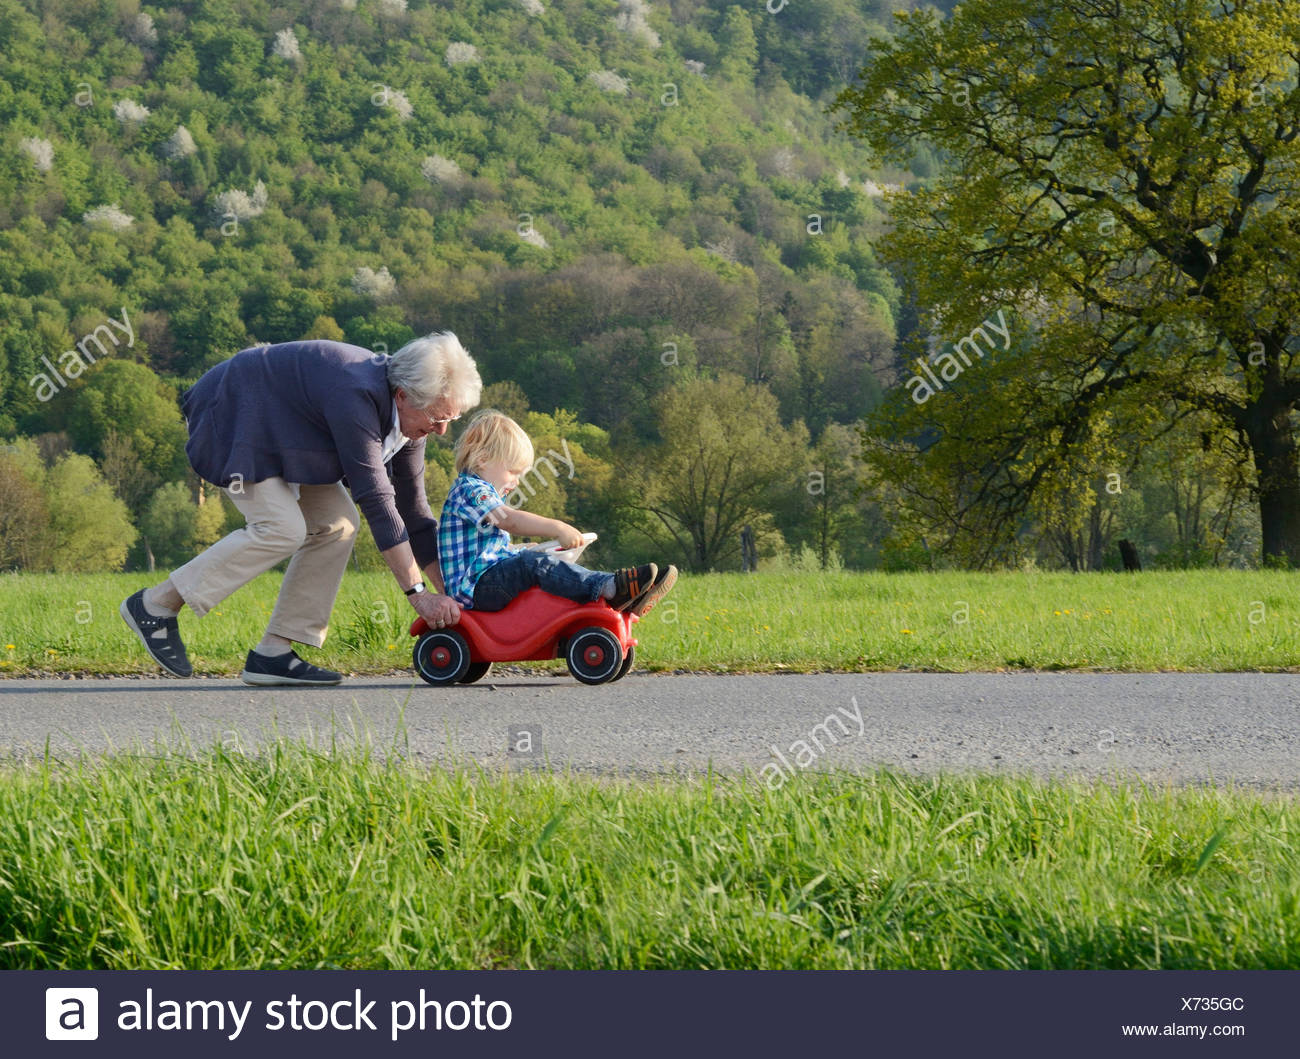 Grandmother pushing boy on go kart - Stock Image